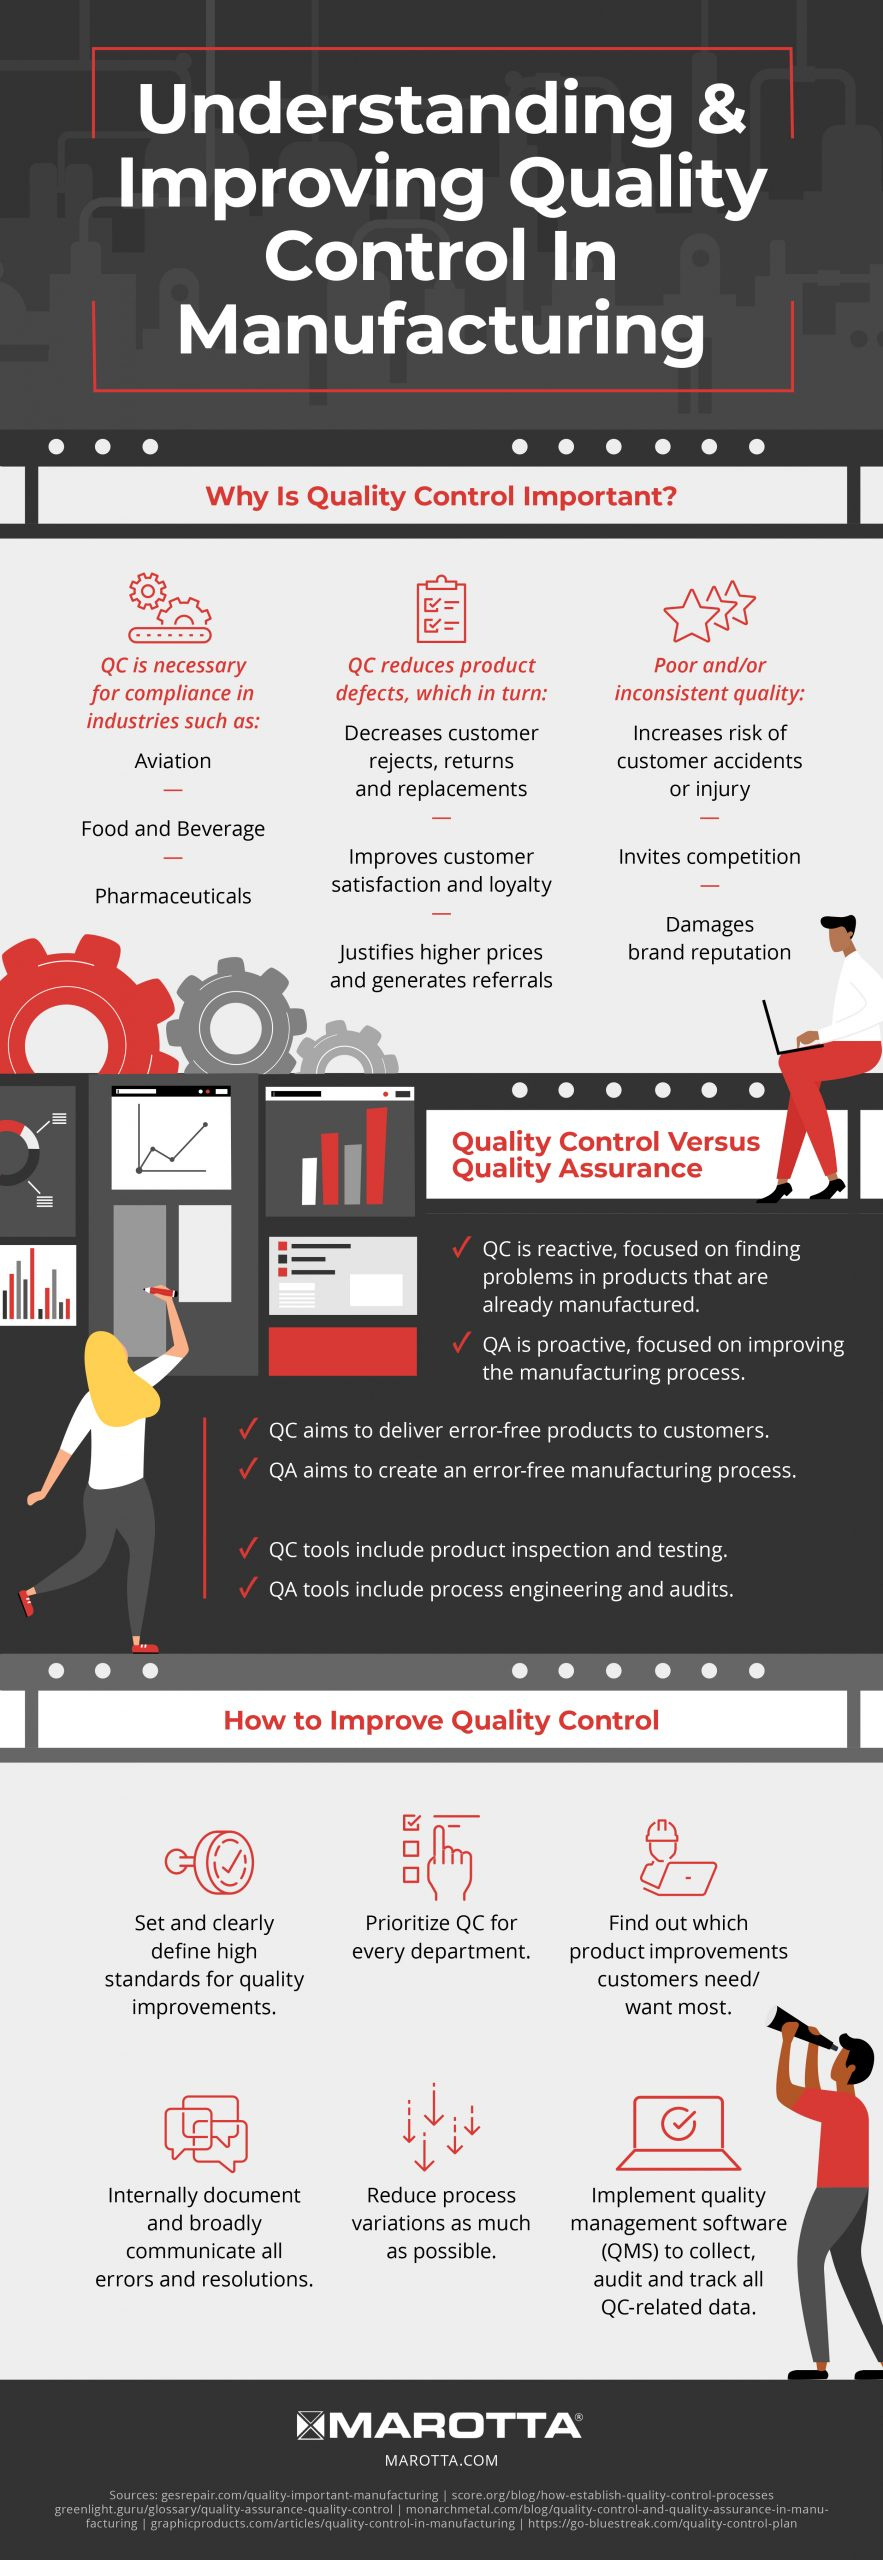 improving quality control in manufacturing infographic